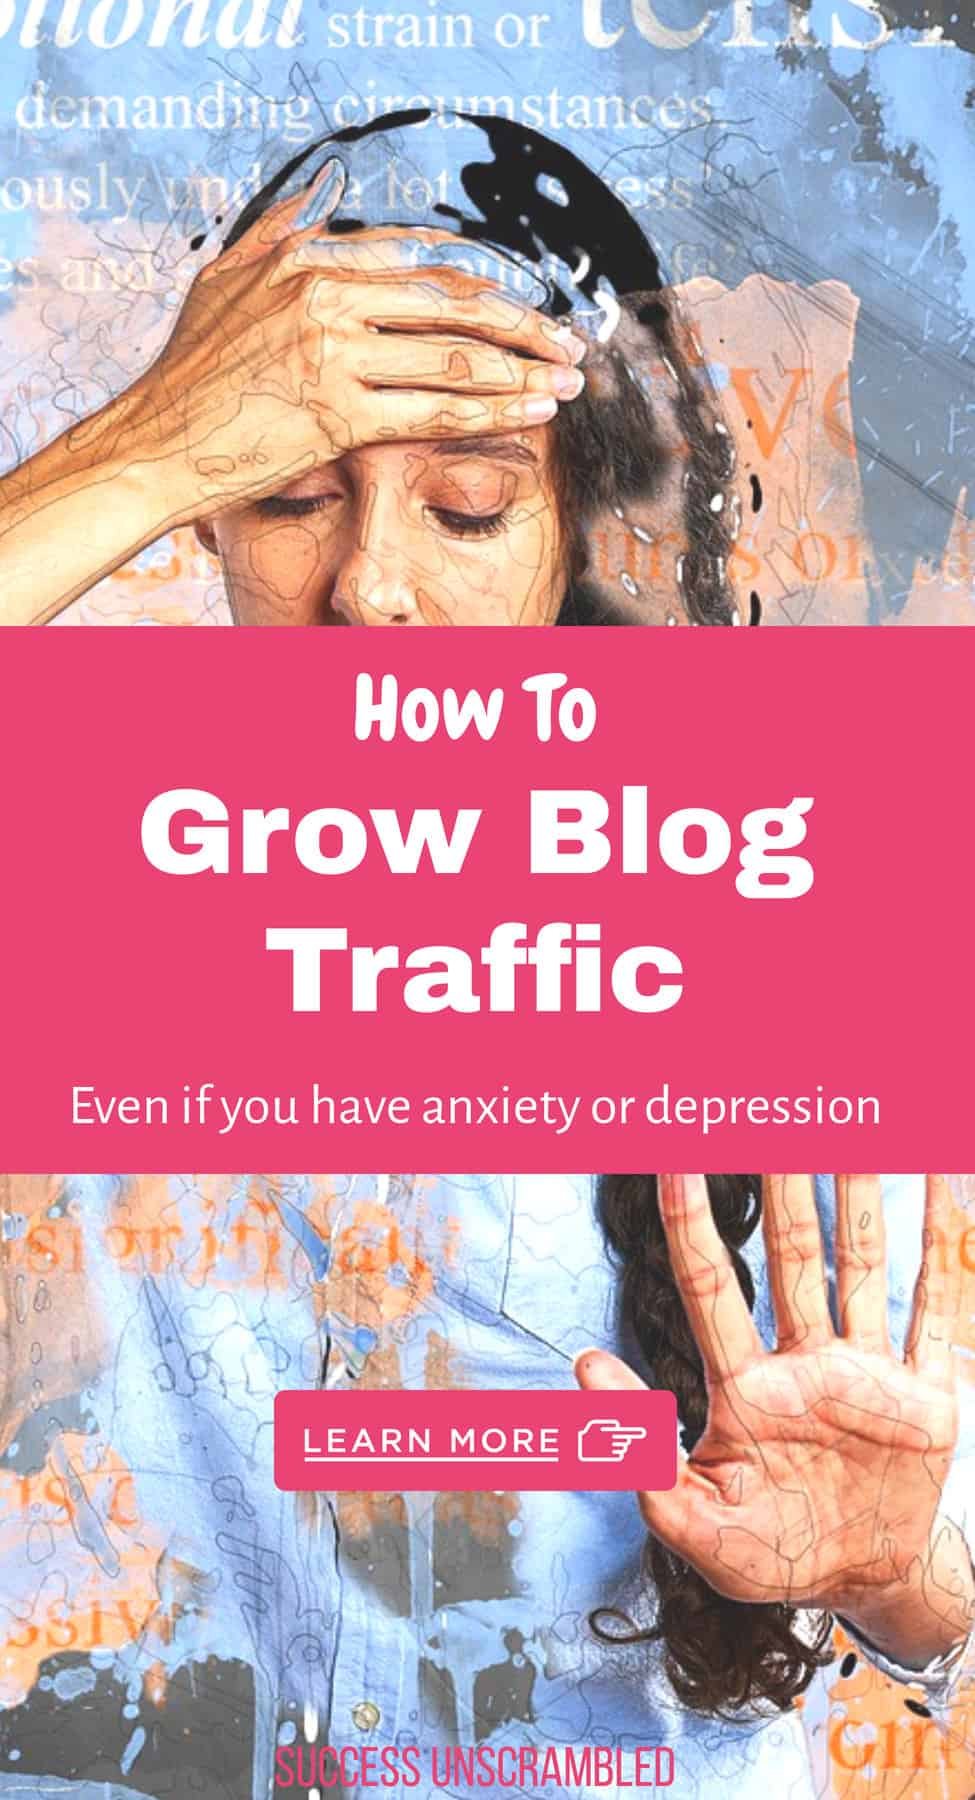 how to grow blog traffic even if you have anxiety and depression